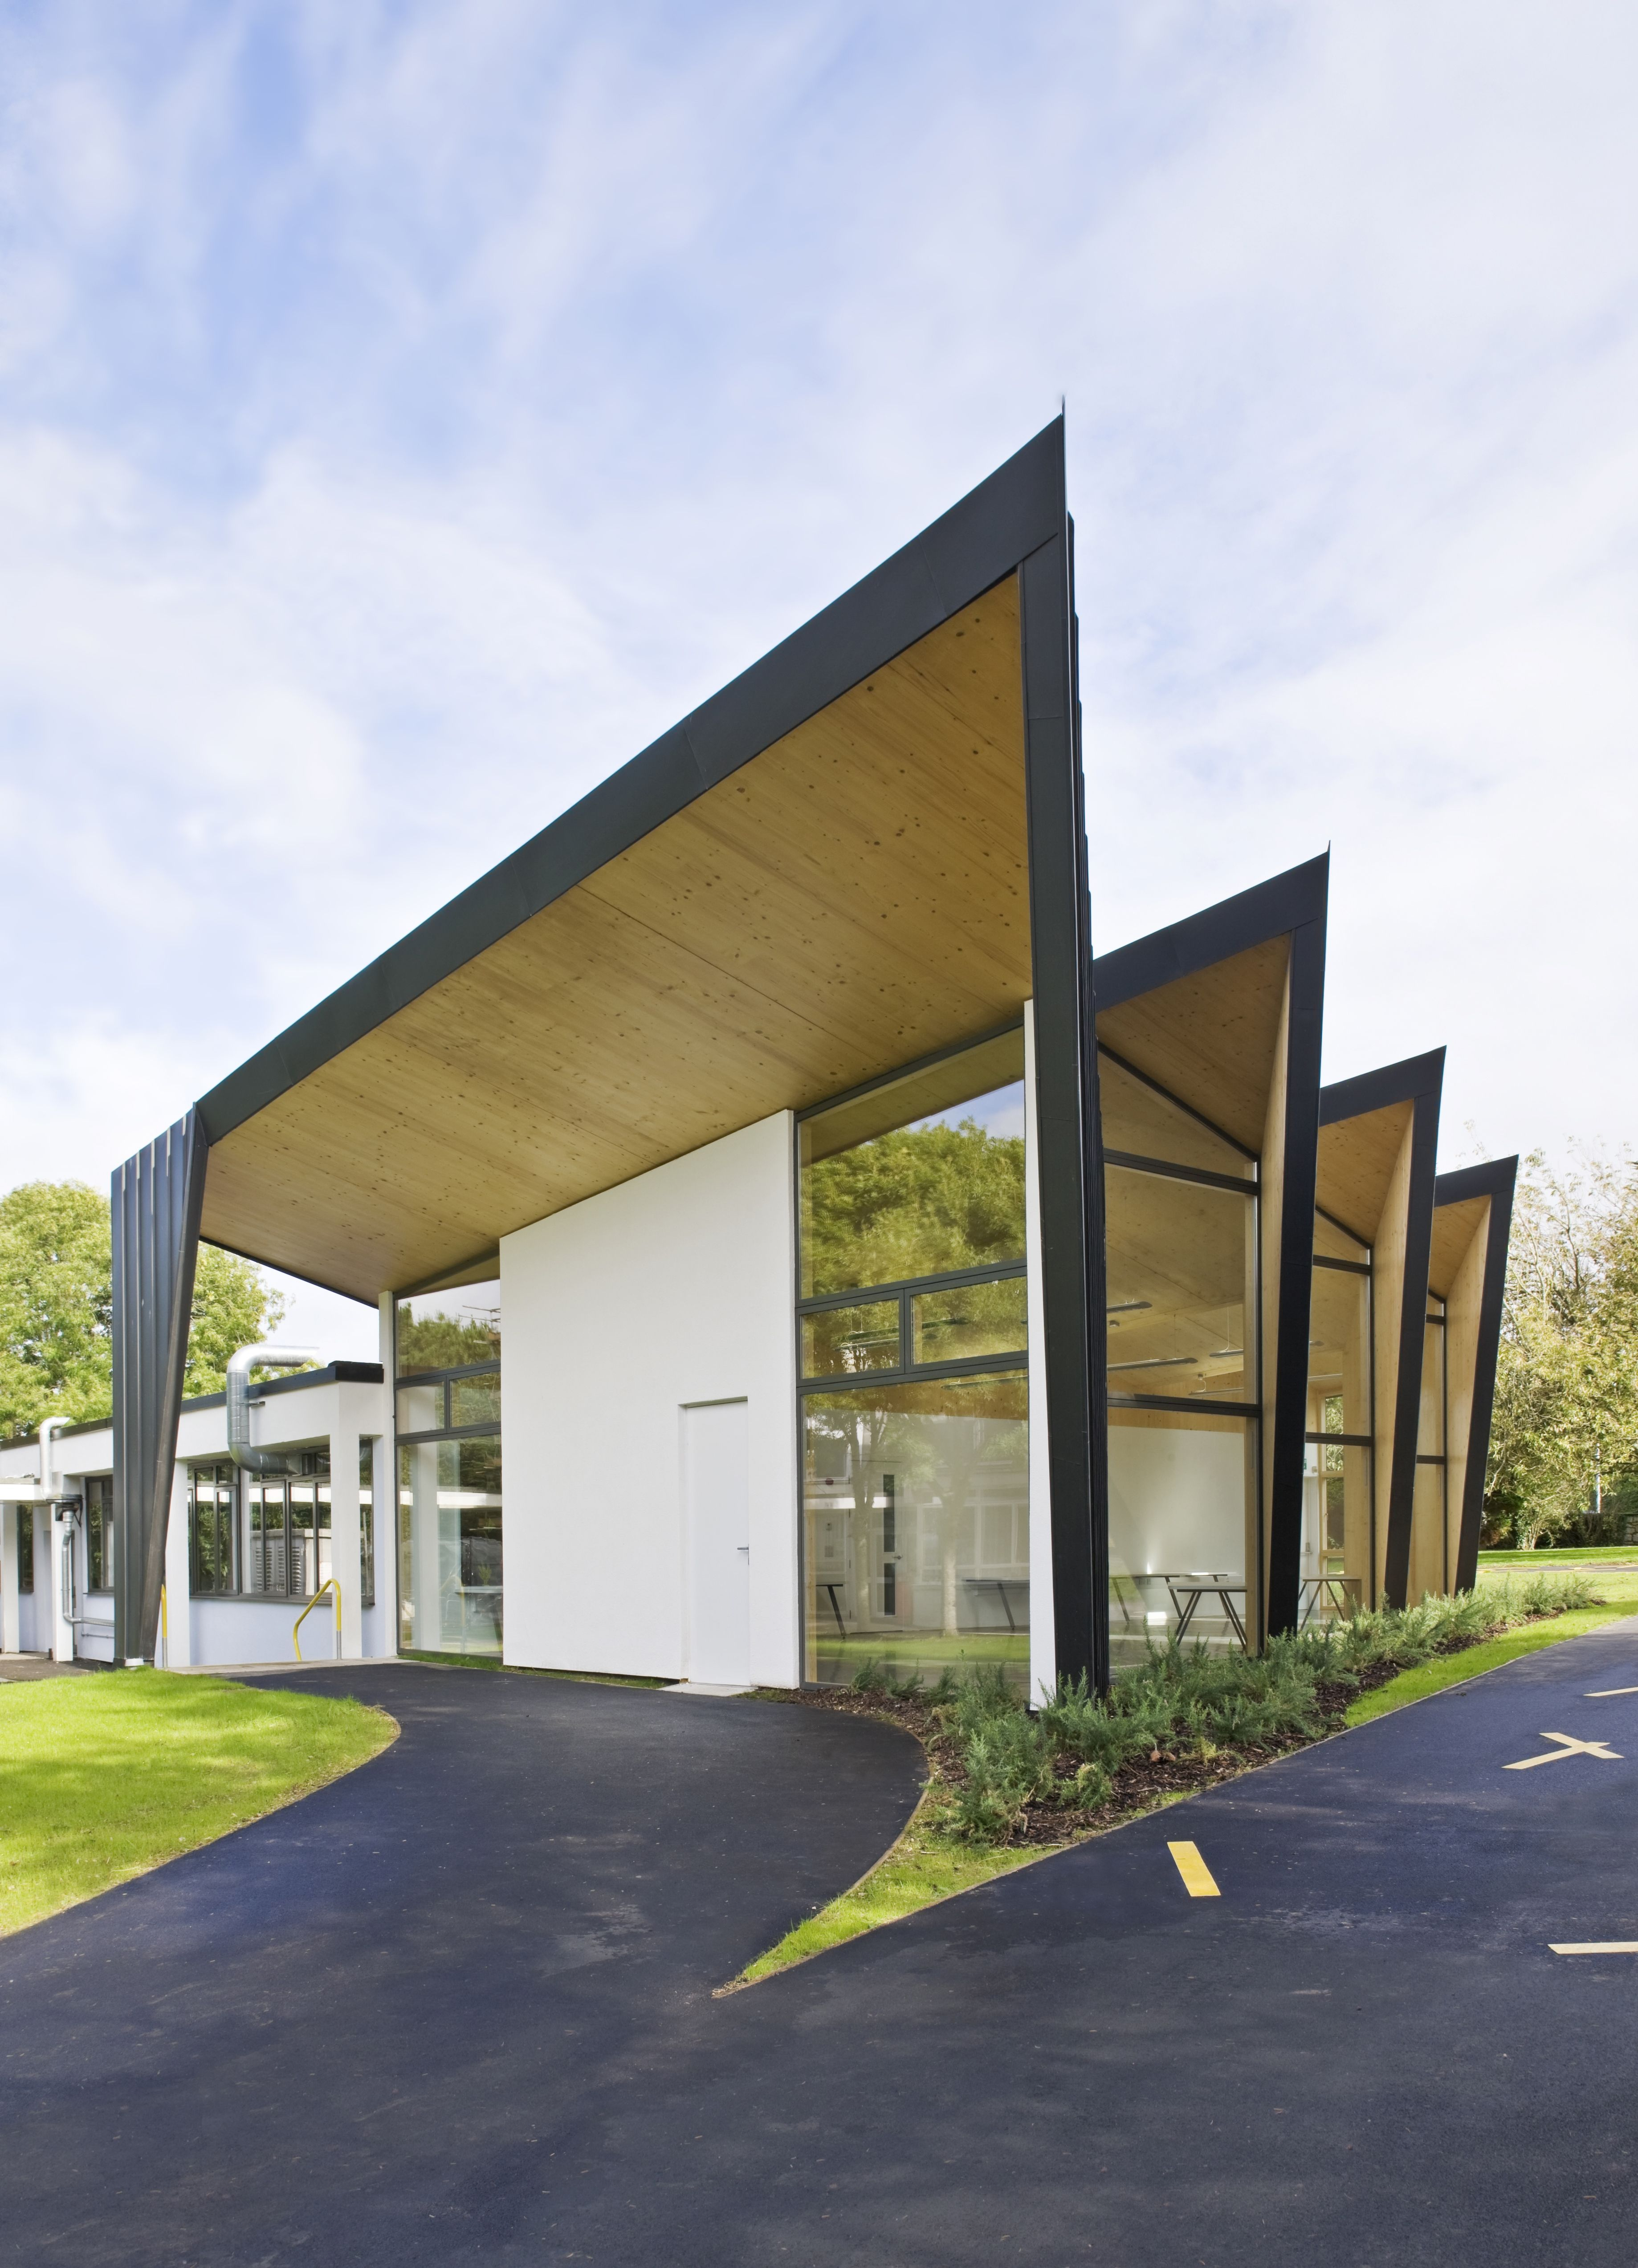 Falmouth School - designed by Urban Salon, built by Cowlin Construction and supplied and installed by KLH UK.